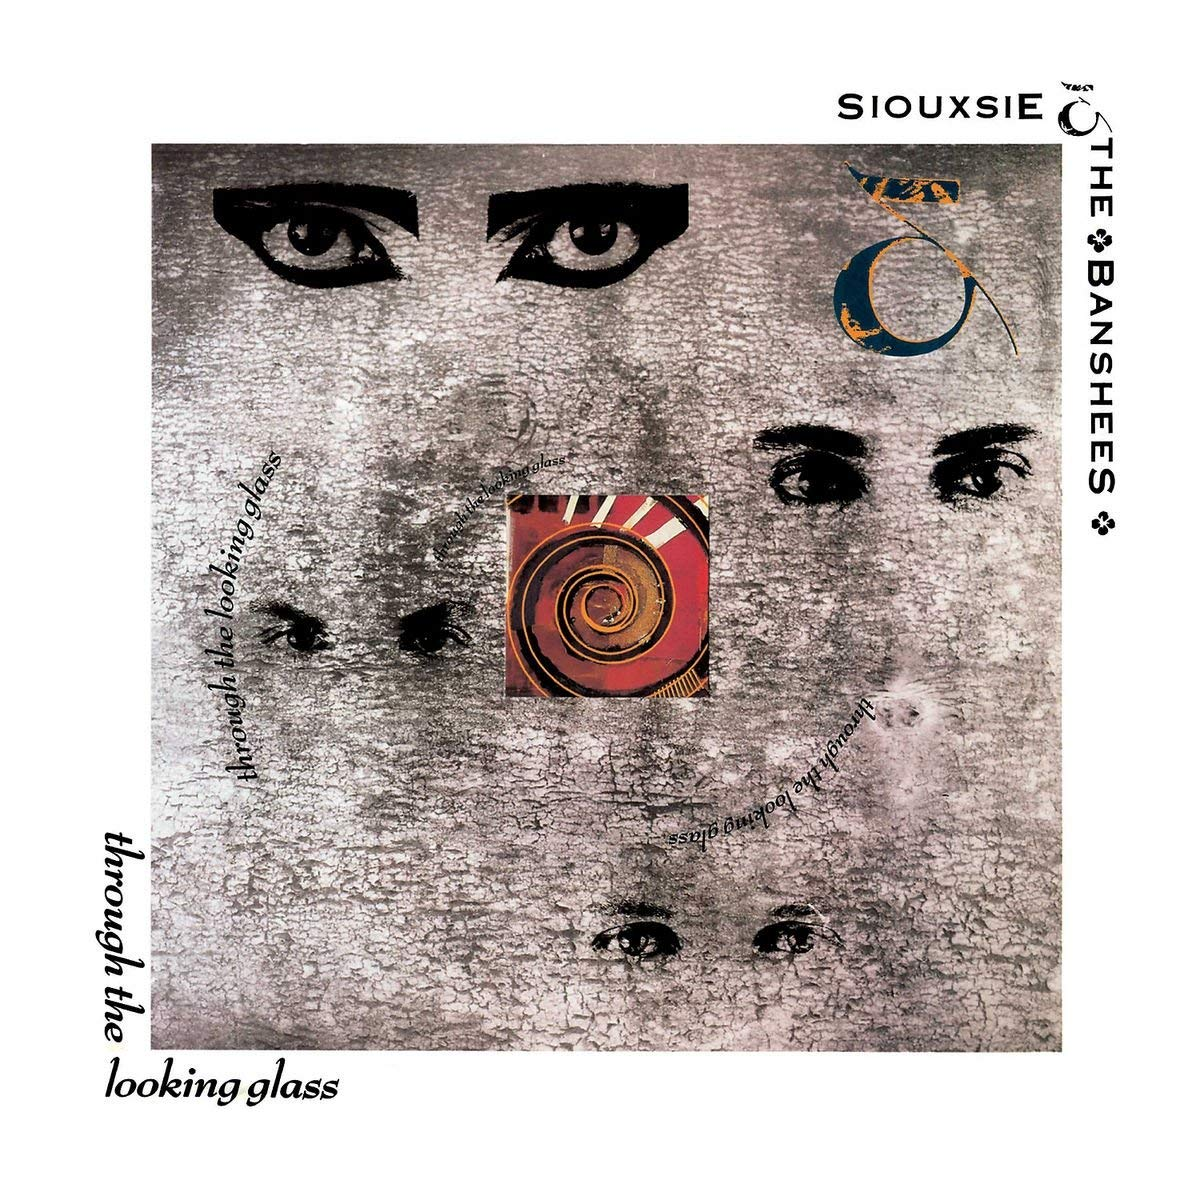 Siouxsie And The Banshees Siouxsie And The Banshees. Through The Looking Glass (LP) through the looking glass